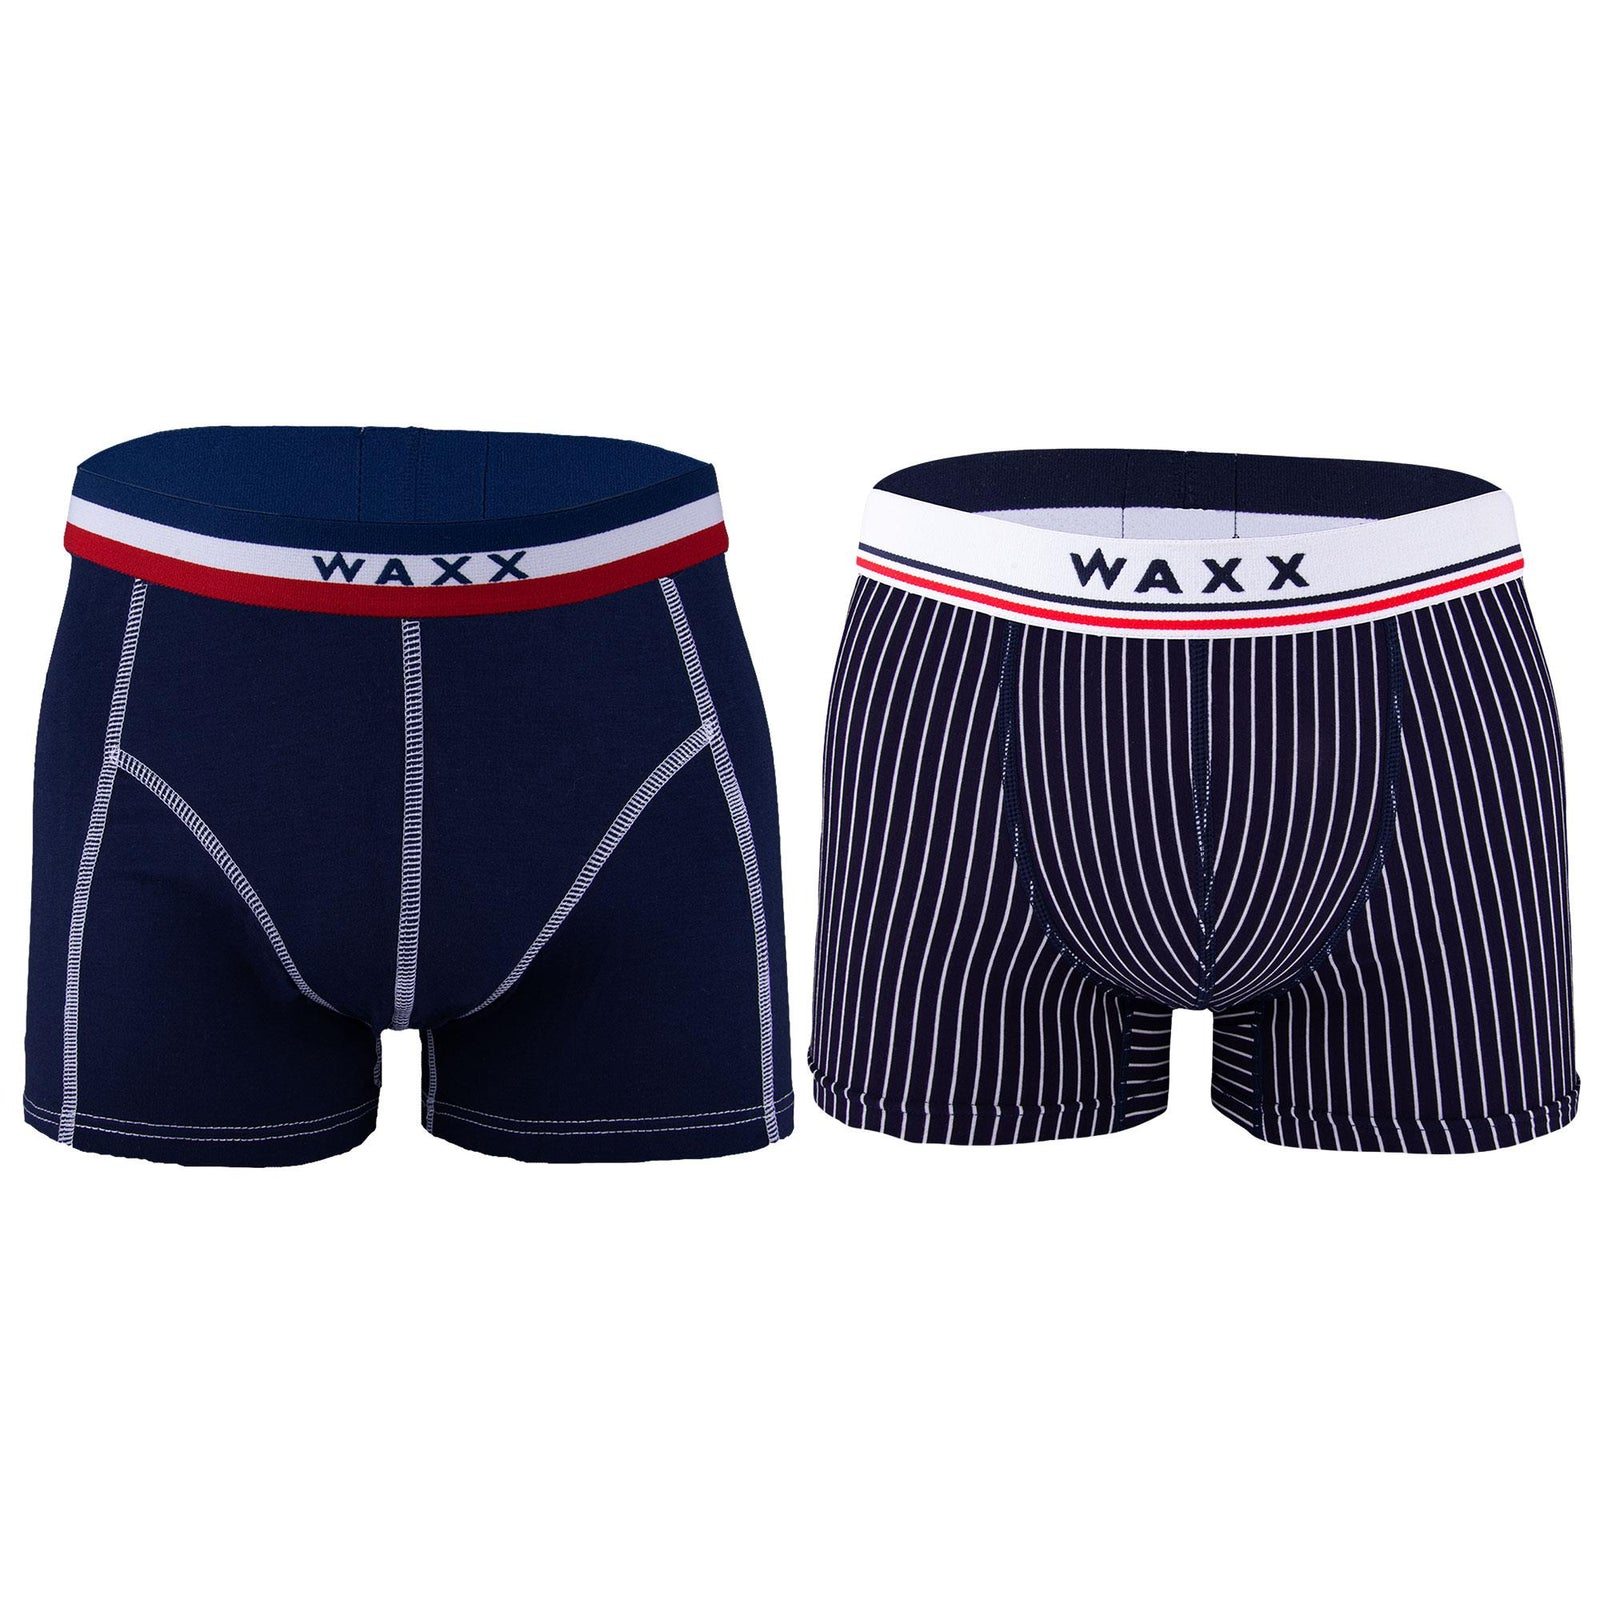 Waxx Men's Trunk Boxer Short Bundle 'In the Navy'